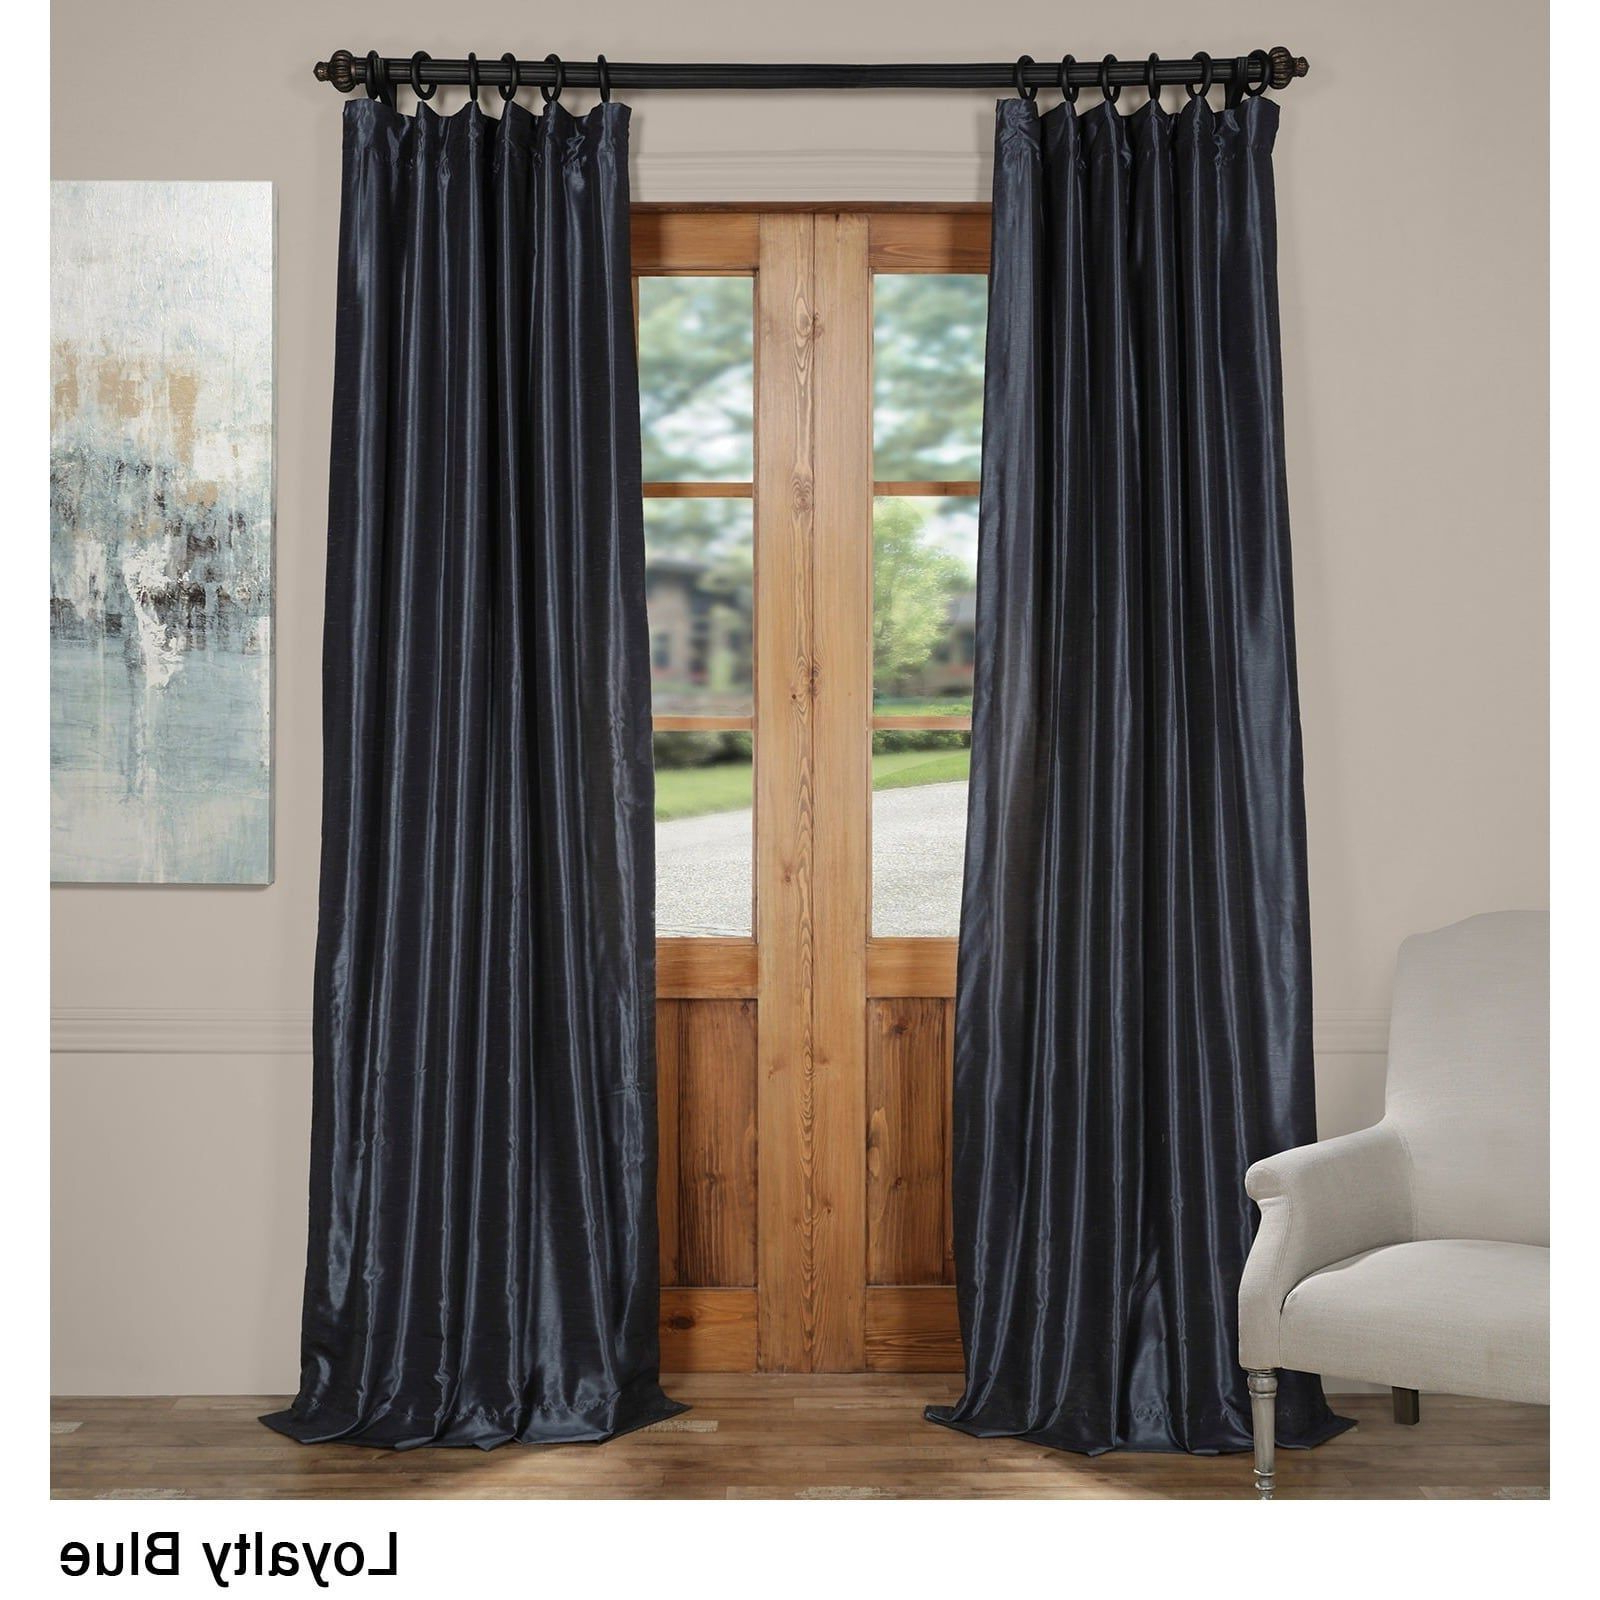 Well Known True Blackout Vintage Textured Faux Silk Curtain Panels With Regard To Exclusive Fabrics Vintage Textured Faux Dupioni Silk Curtain (View 19 of 20)